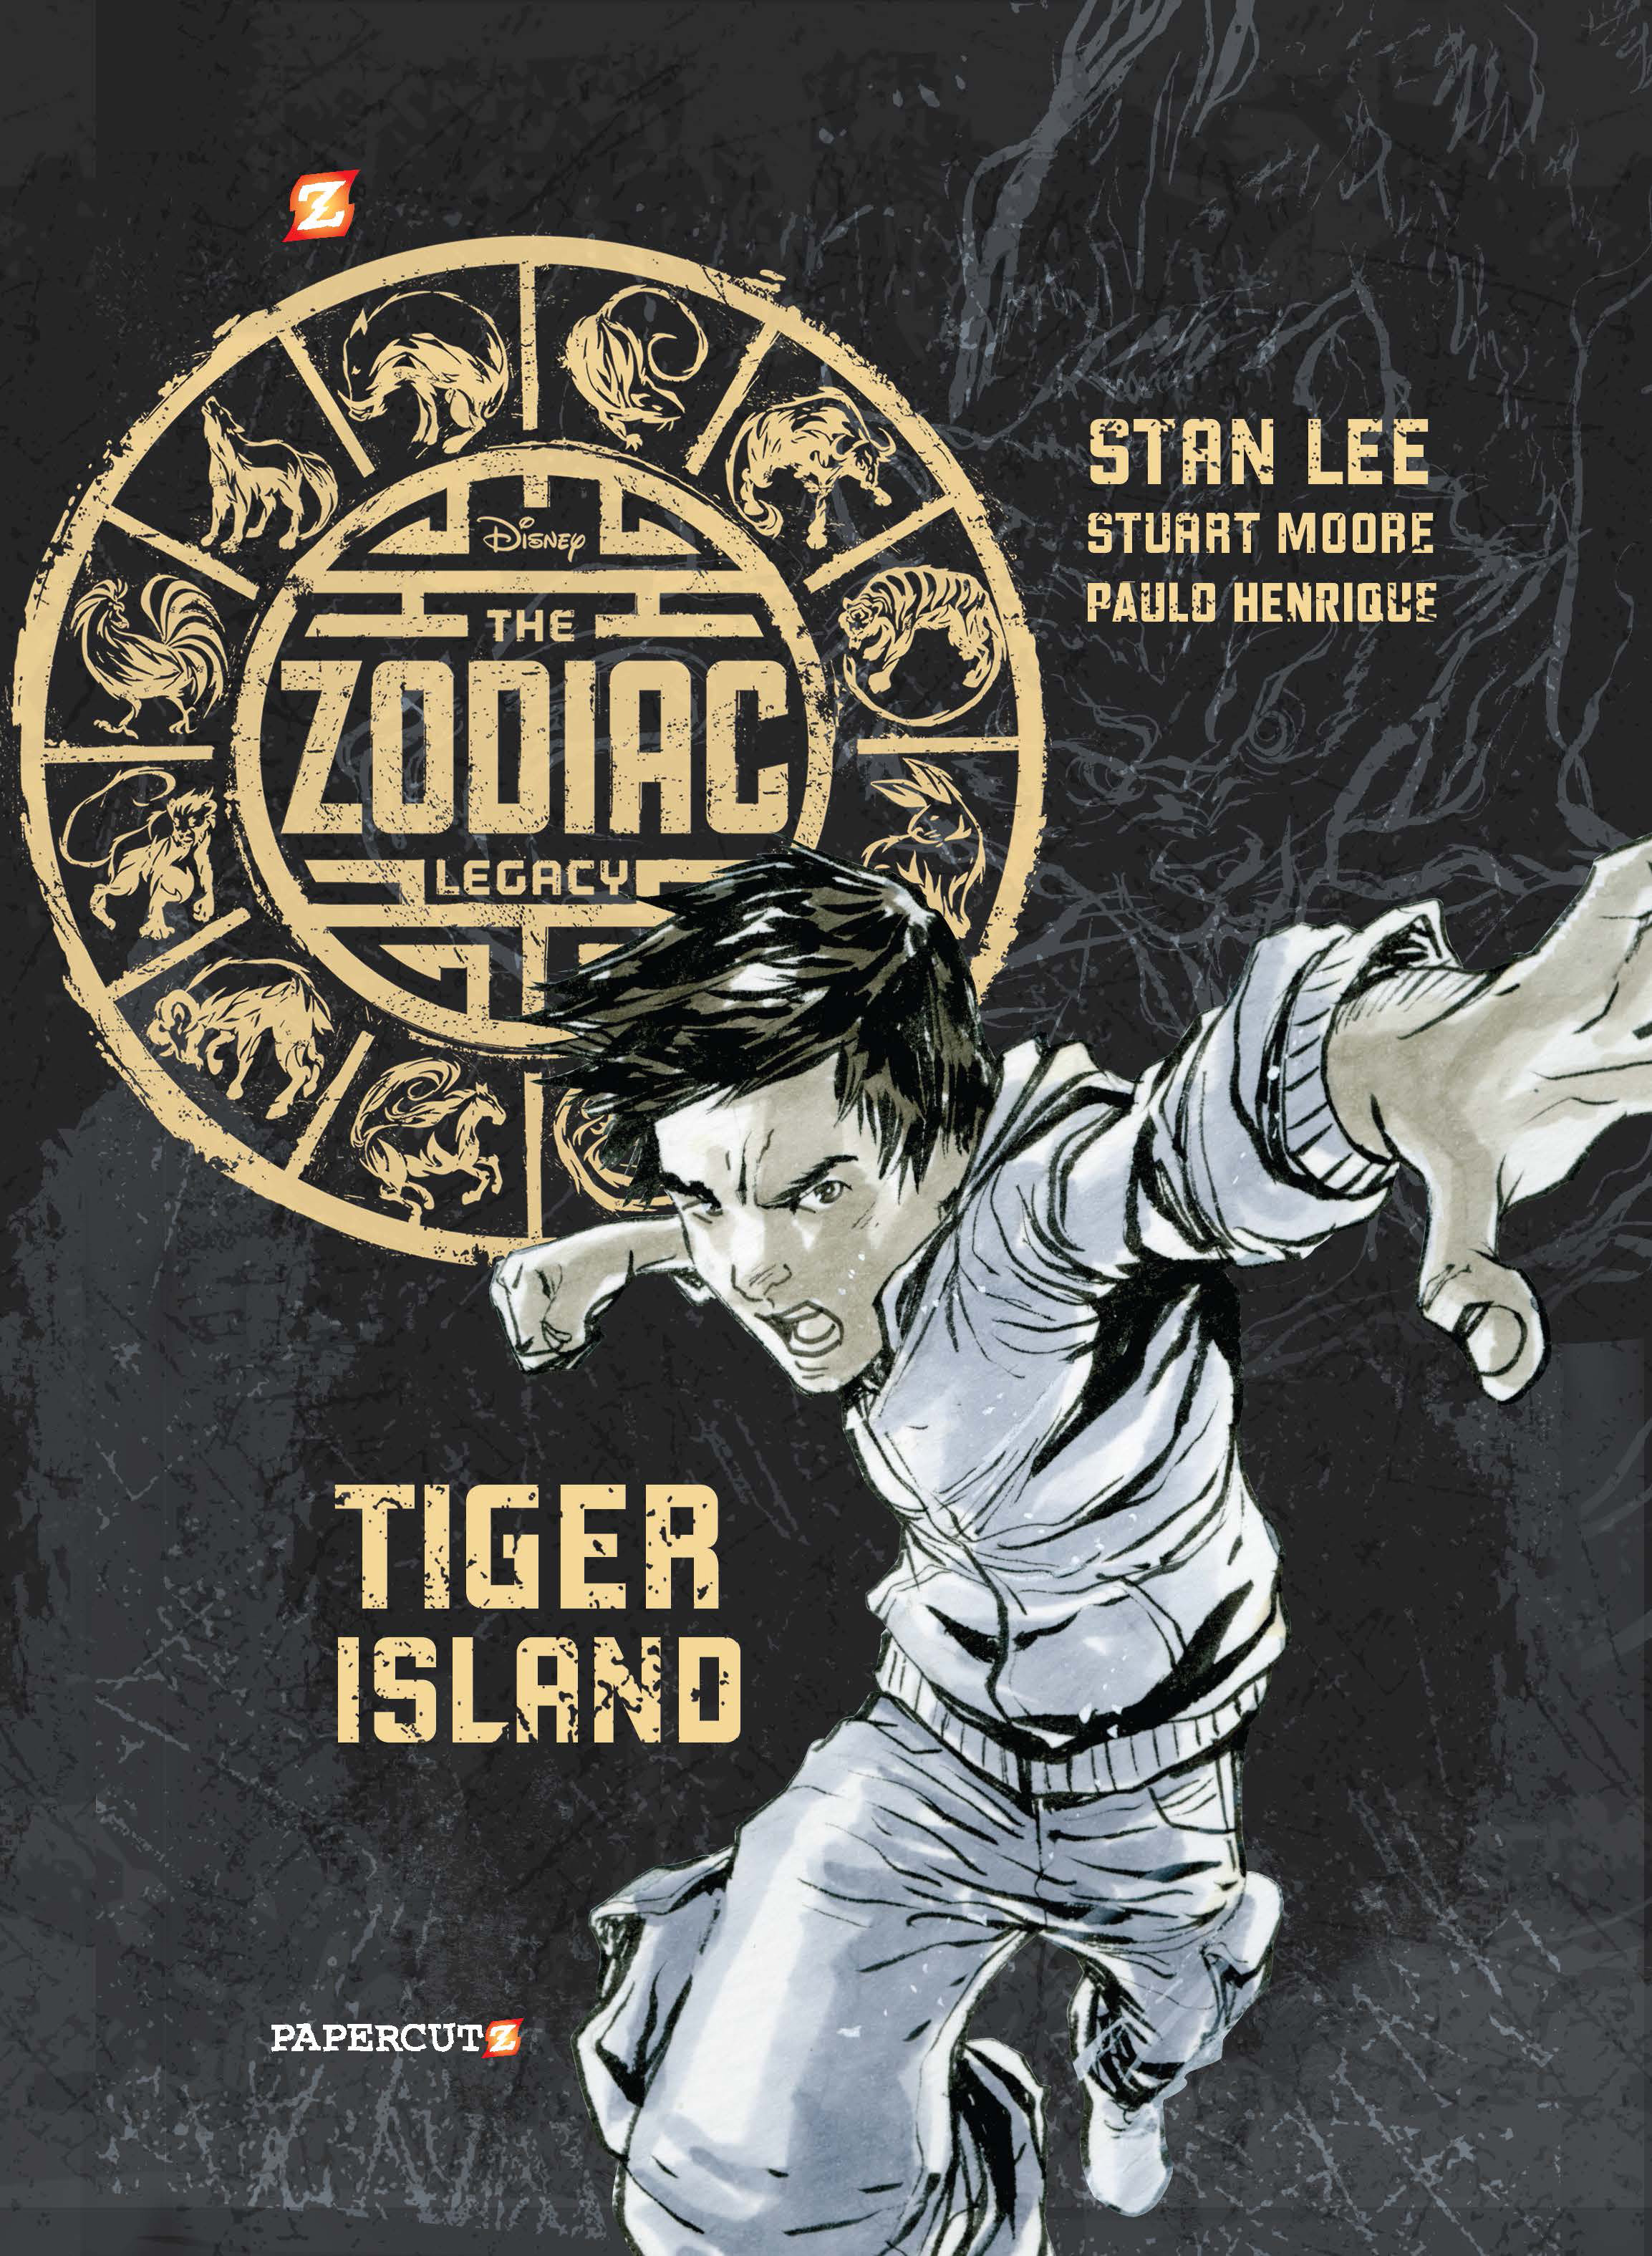 The Zodiac Legacy #1: Tiger Island